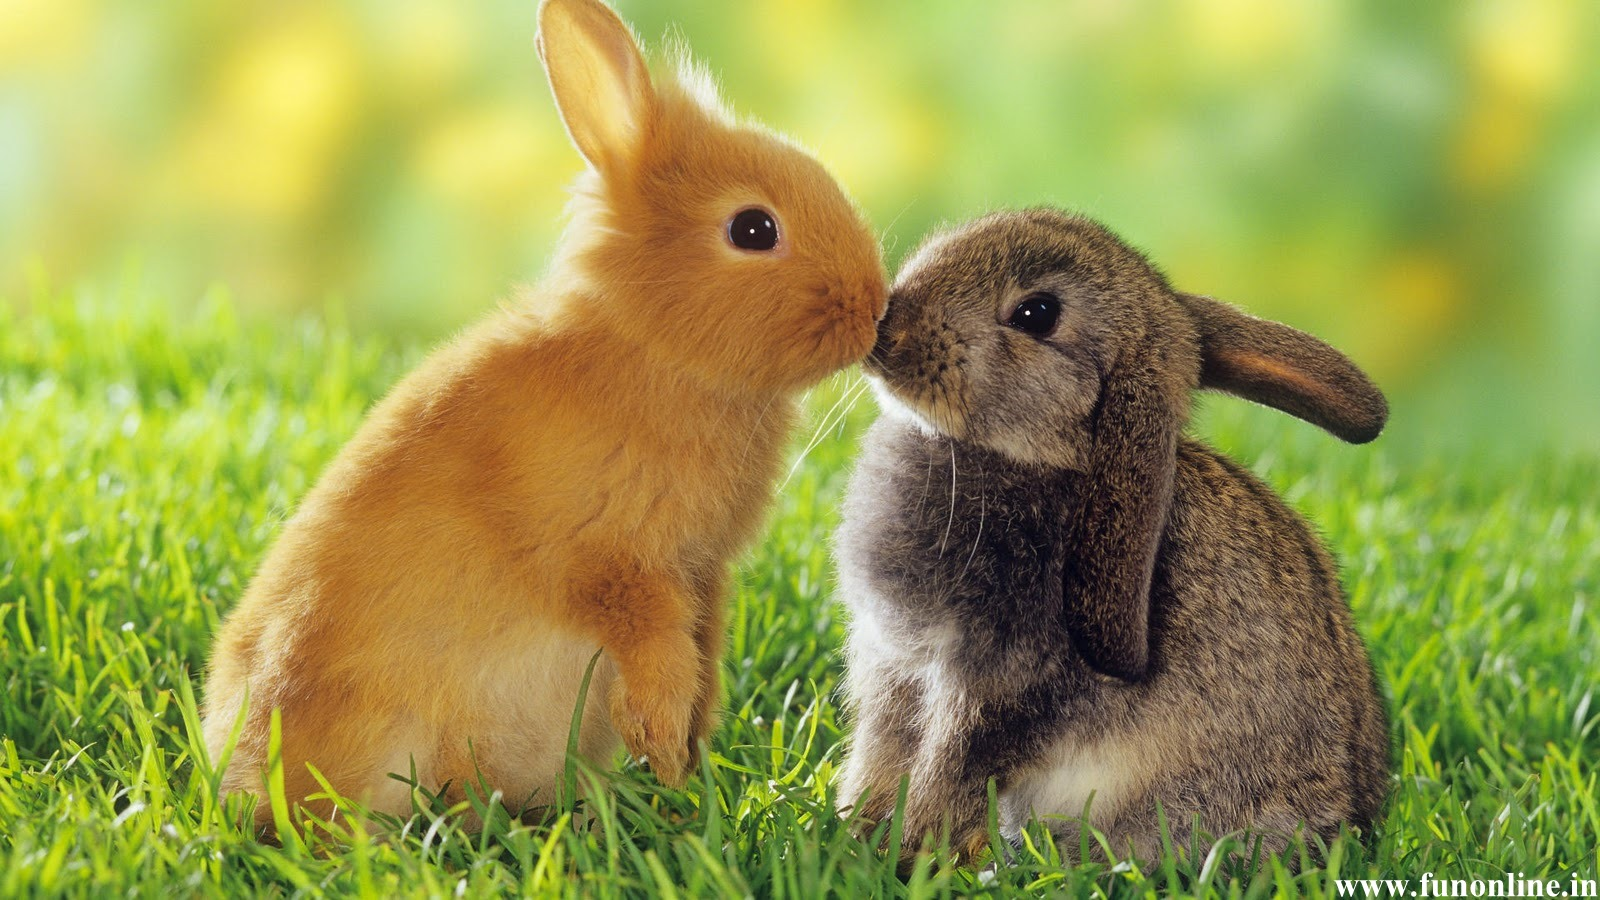 Cute baby rabbit pictures